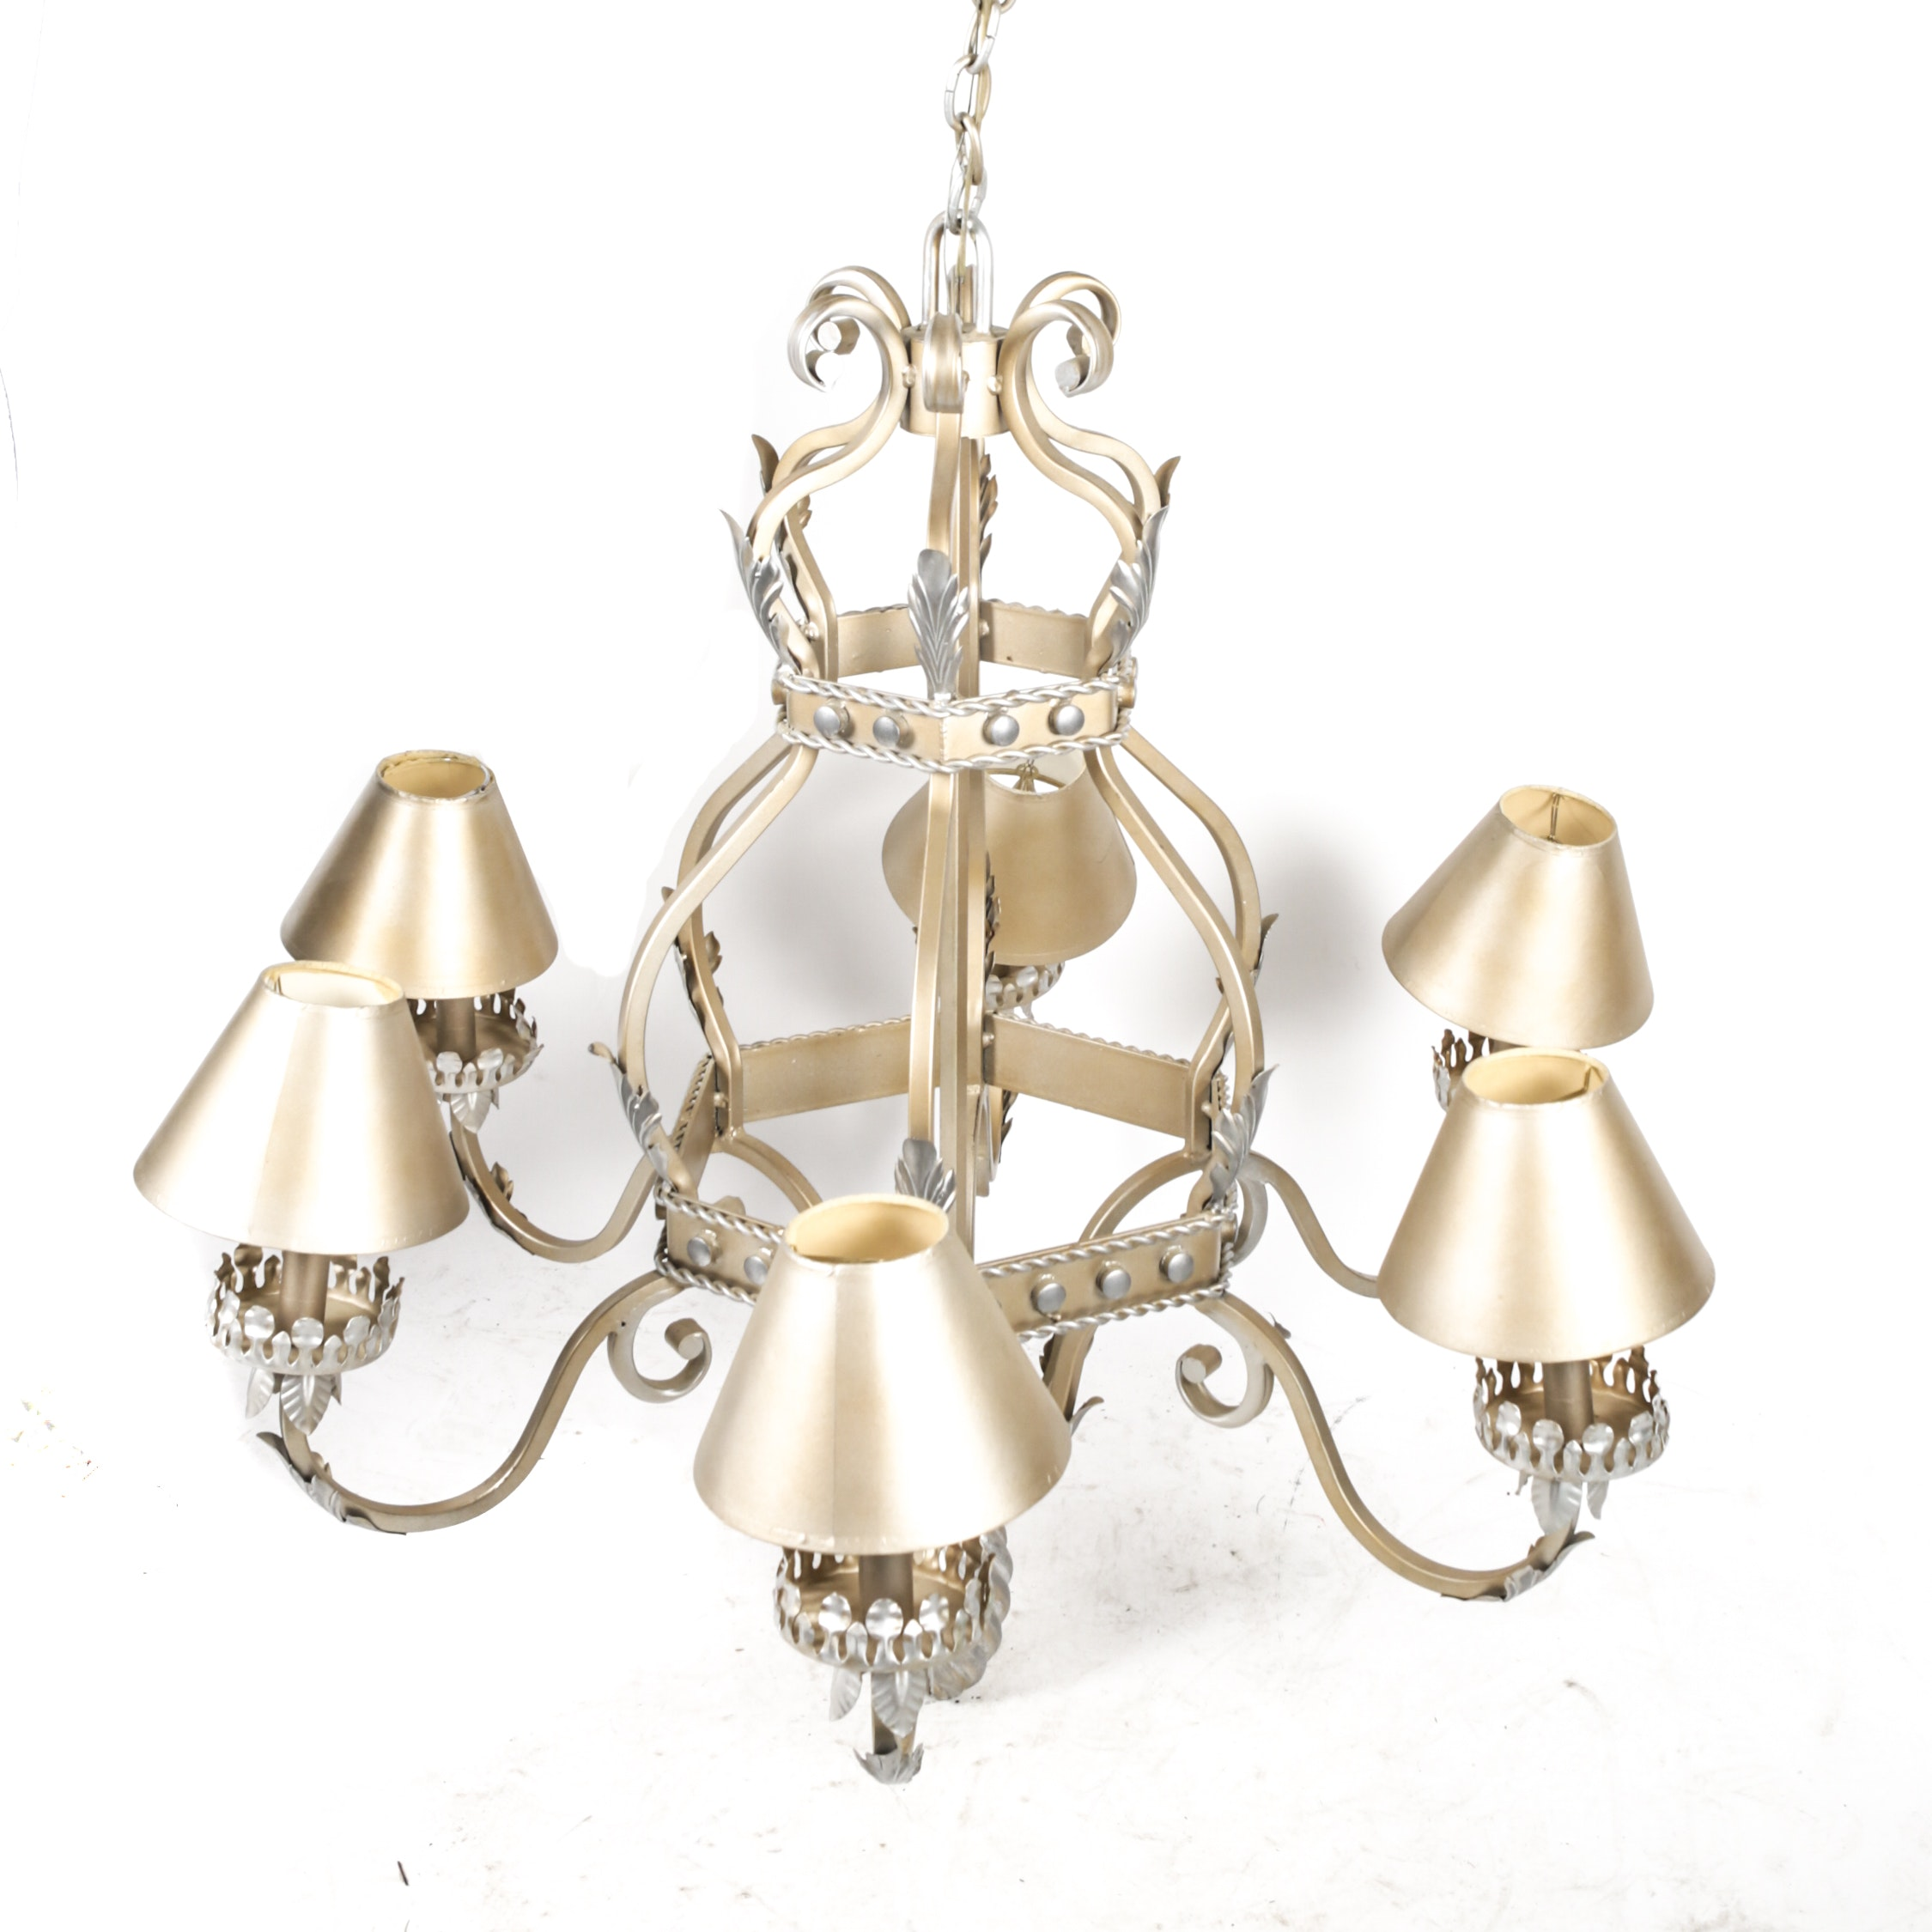 Gold and Silver Tone Chandelier